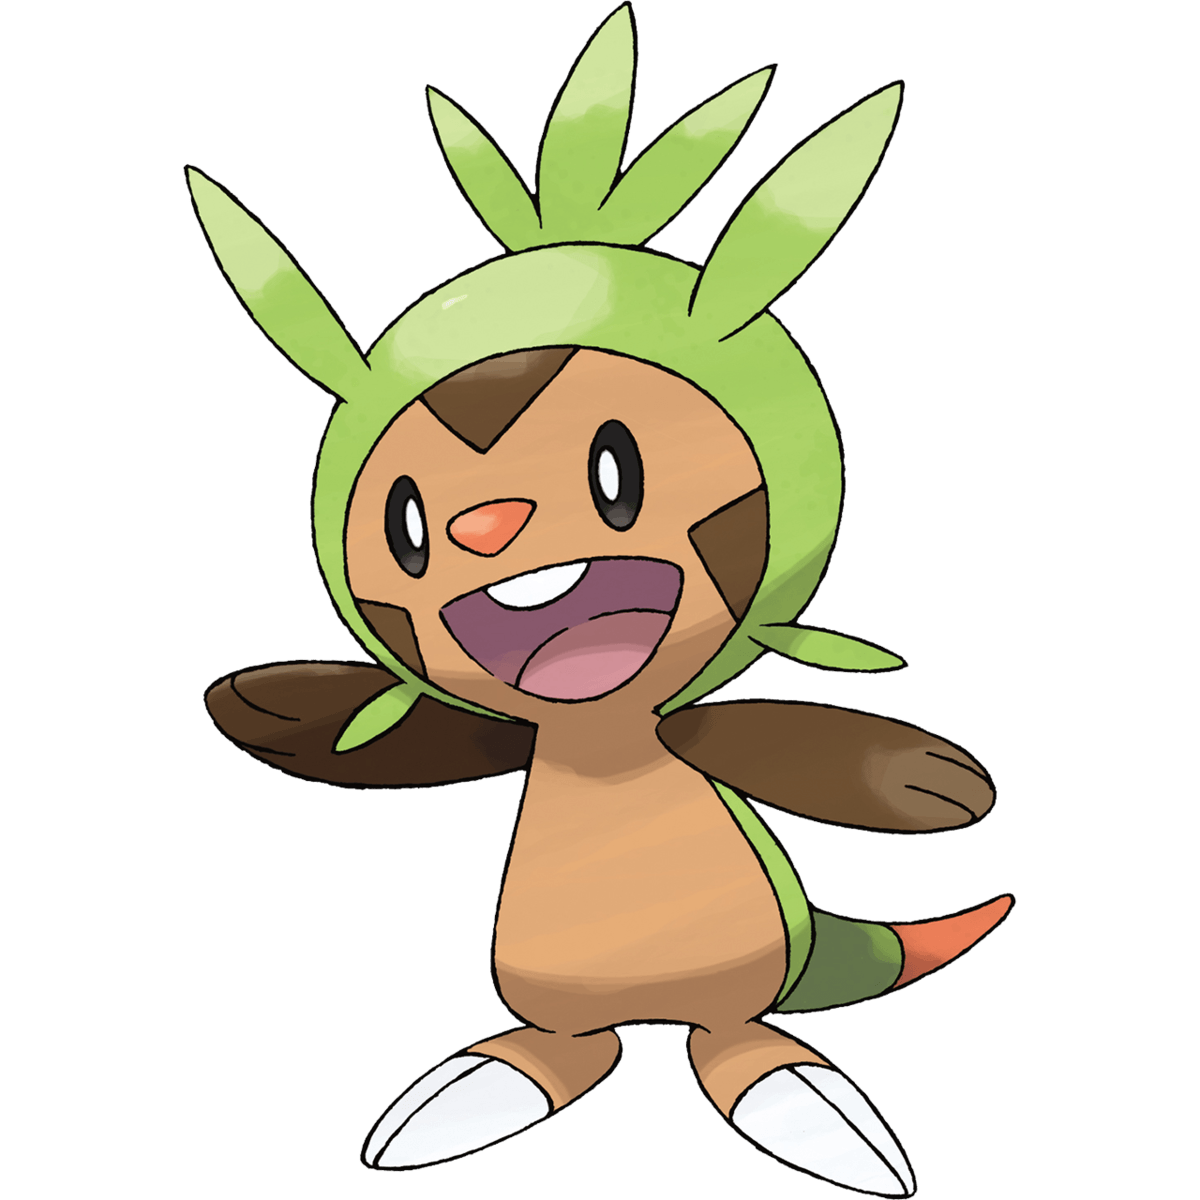 Chespin (Pokémon) - Bulbapedia, the community-driven Pokémon ...